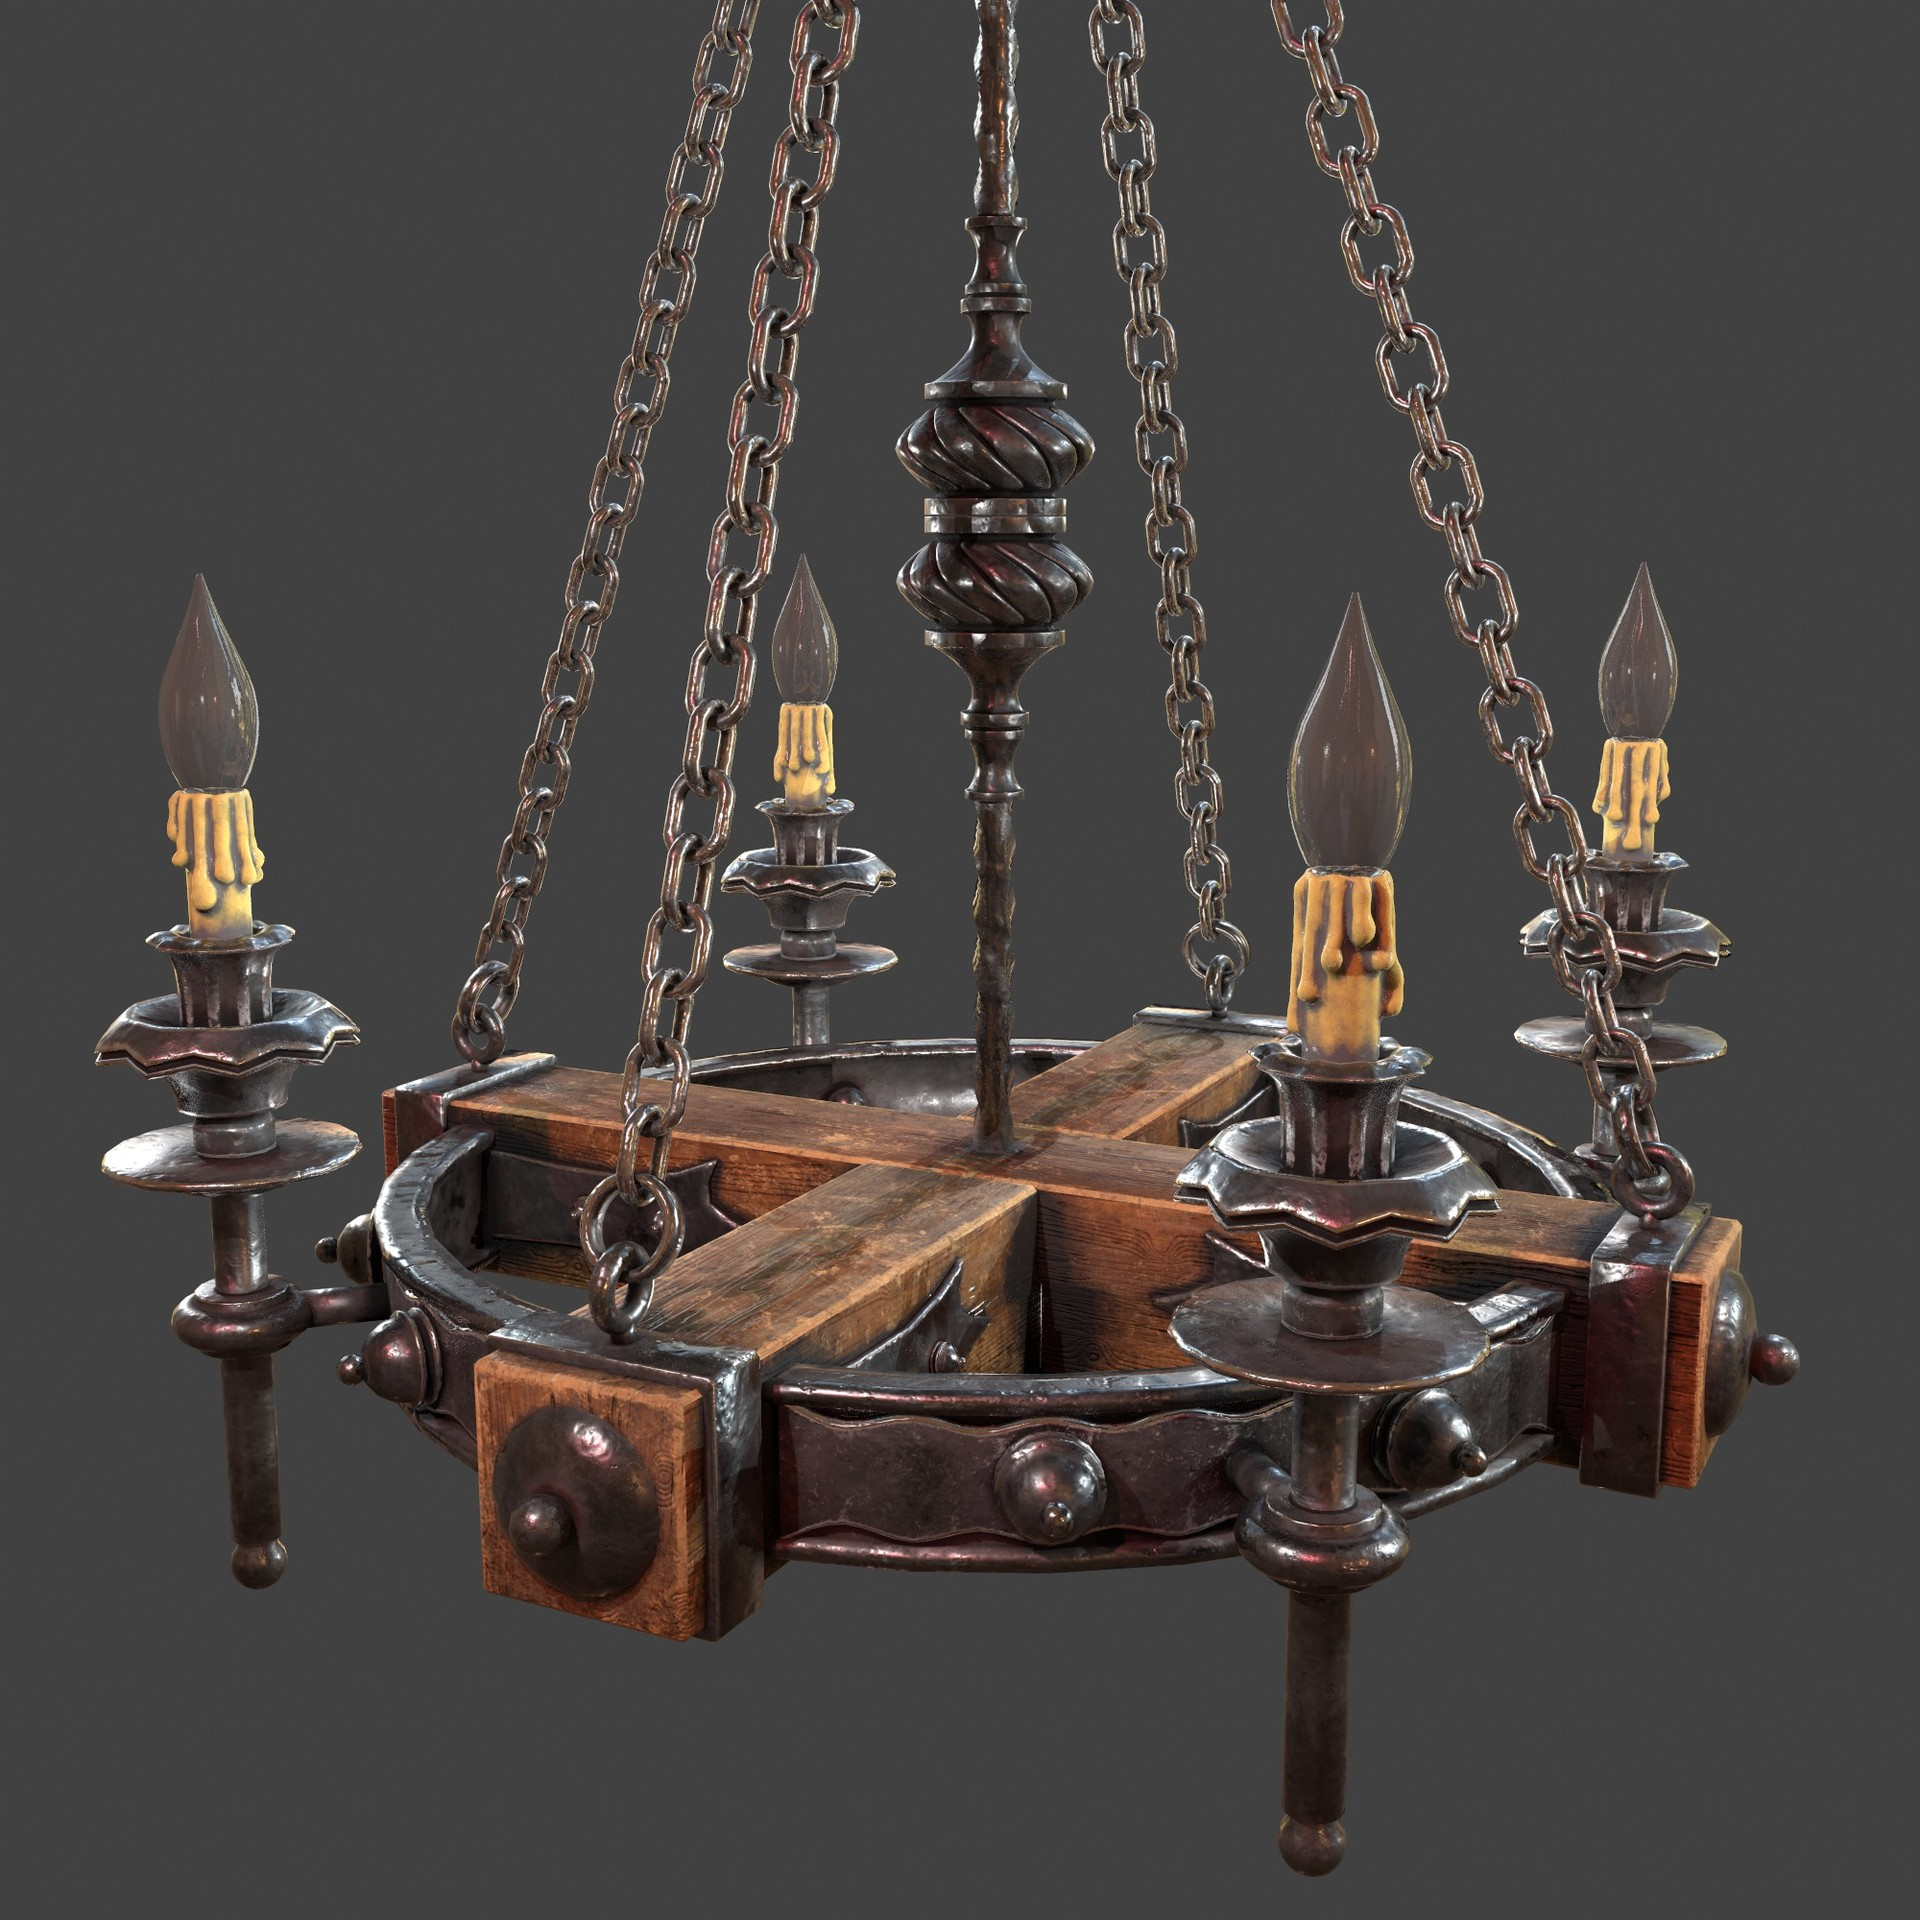 ArtStation - Forged chandelier 1 3d model, Nicu